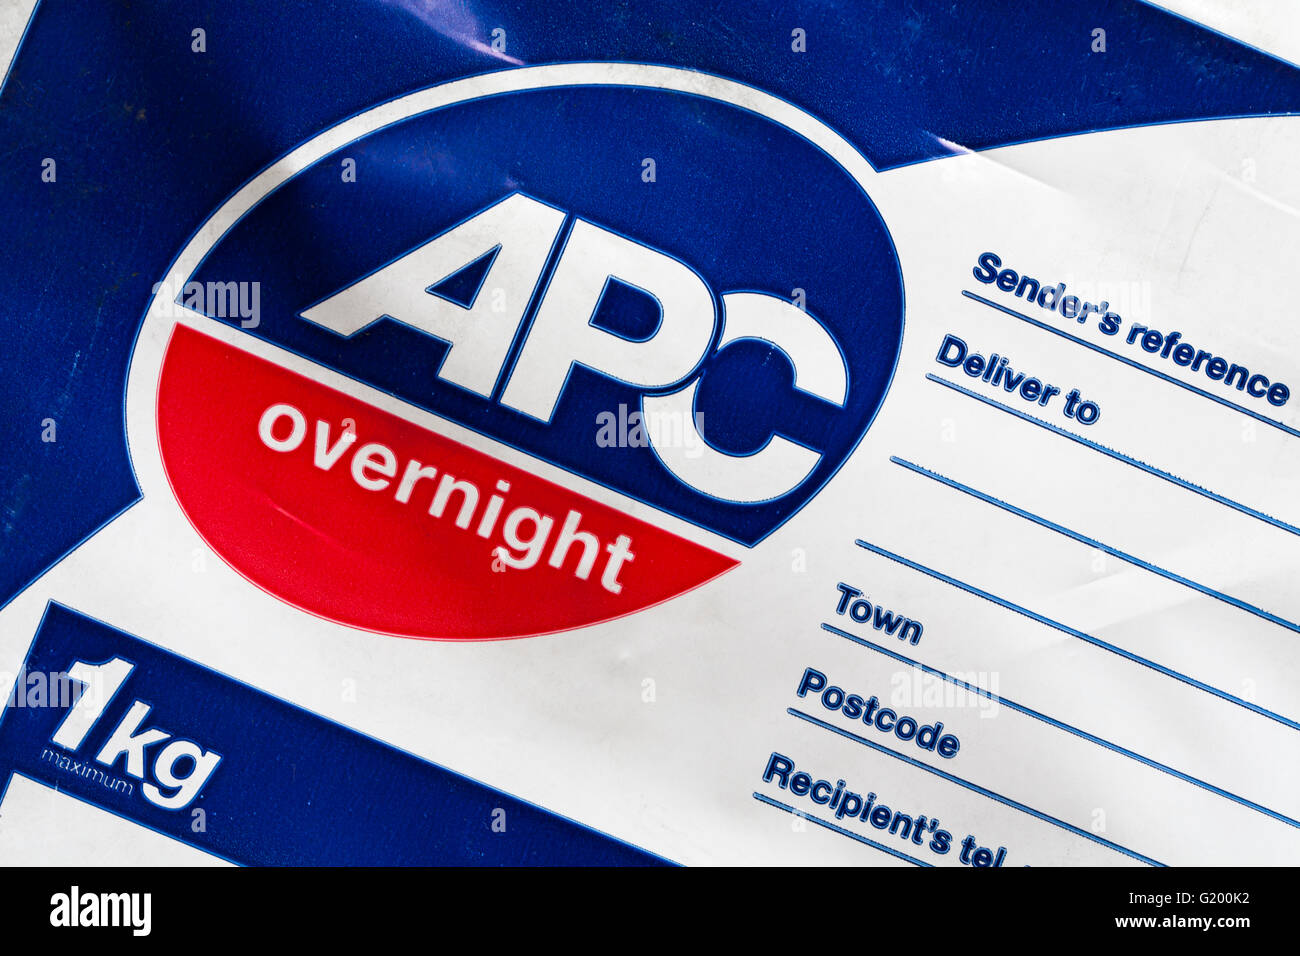 detail on APC overnight package - Stock Image